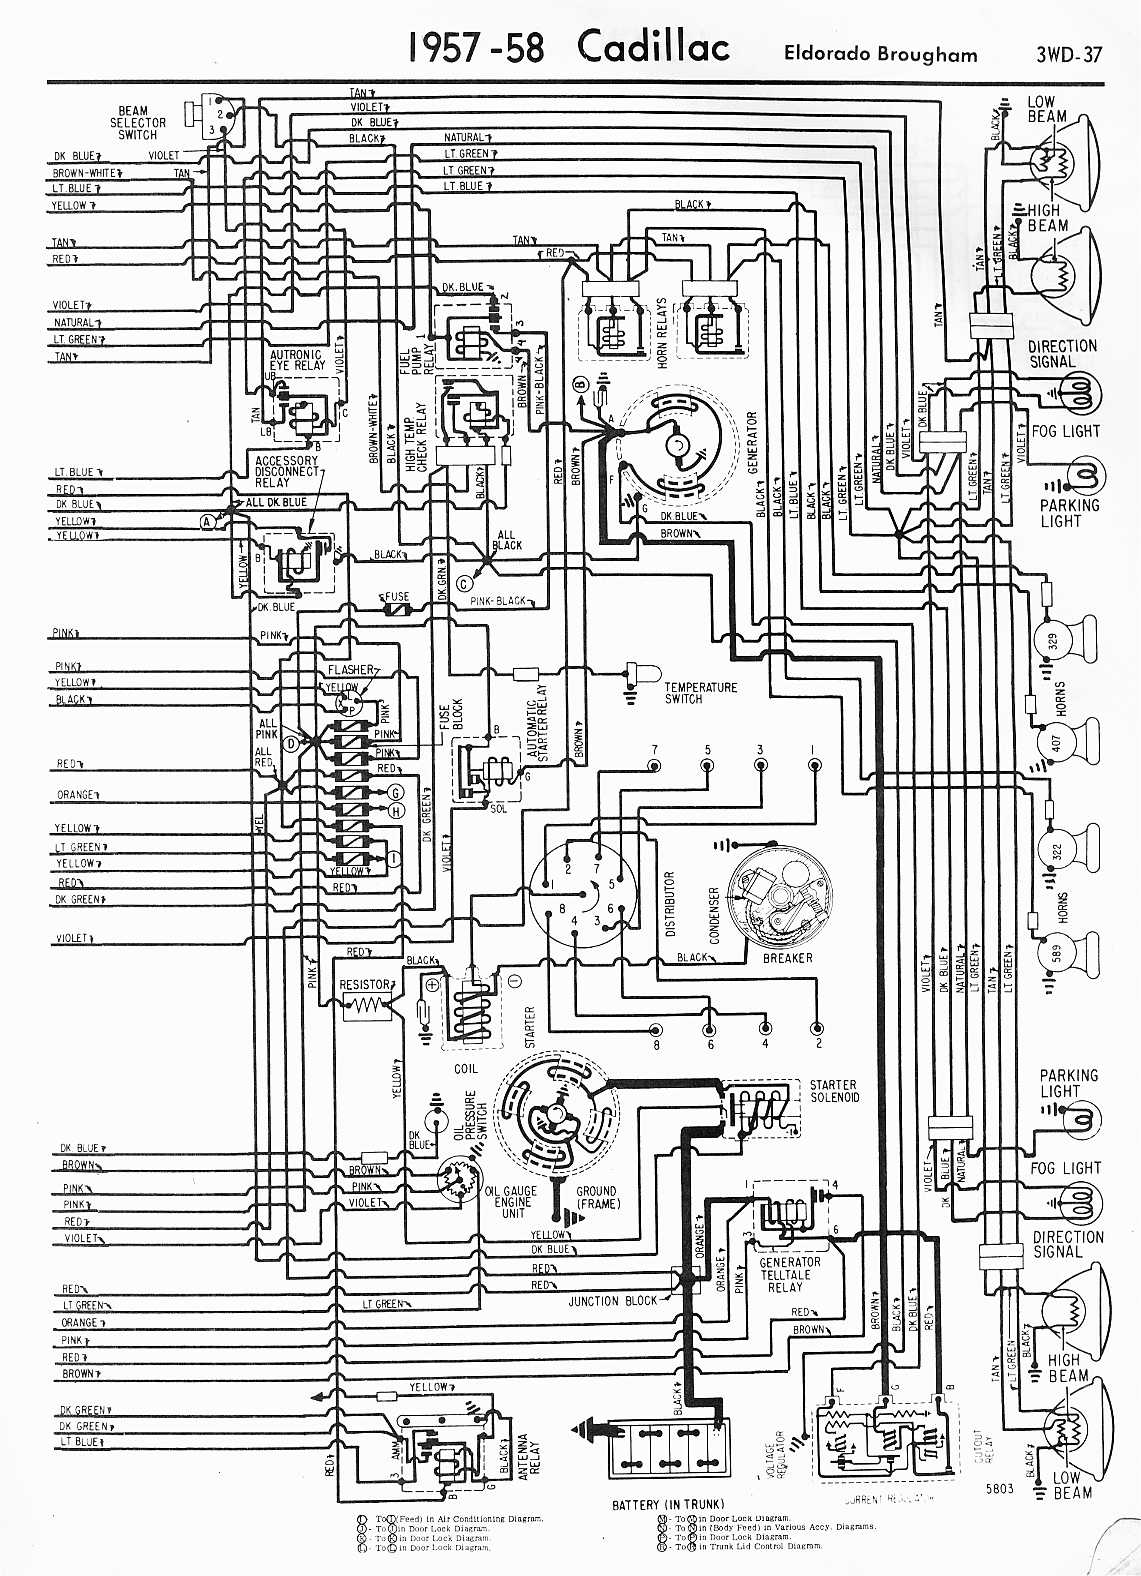 [QMVU_8575]  Cadillac Wiring Diagrams: 1957-1965 | 1966 Cadillac Alternator Wiring Diagram |  | The Old Car Manual Project